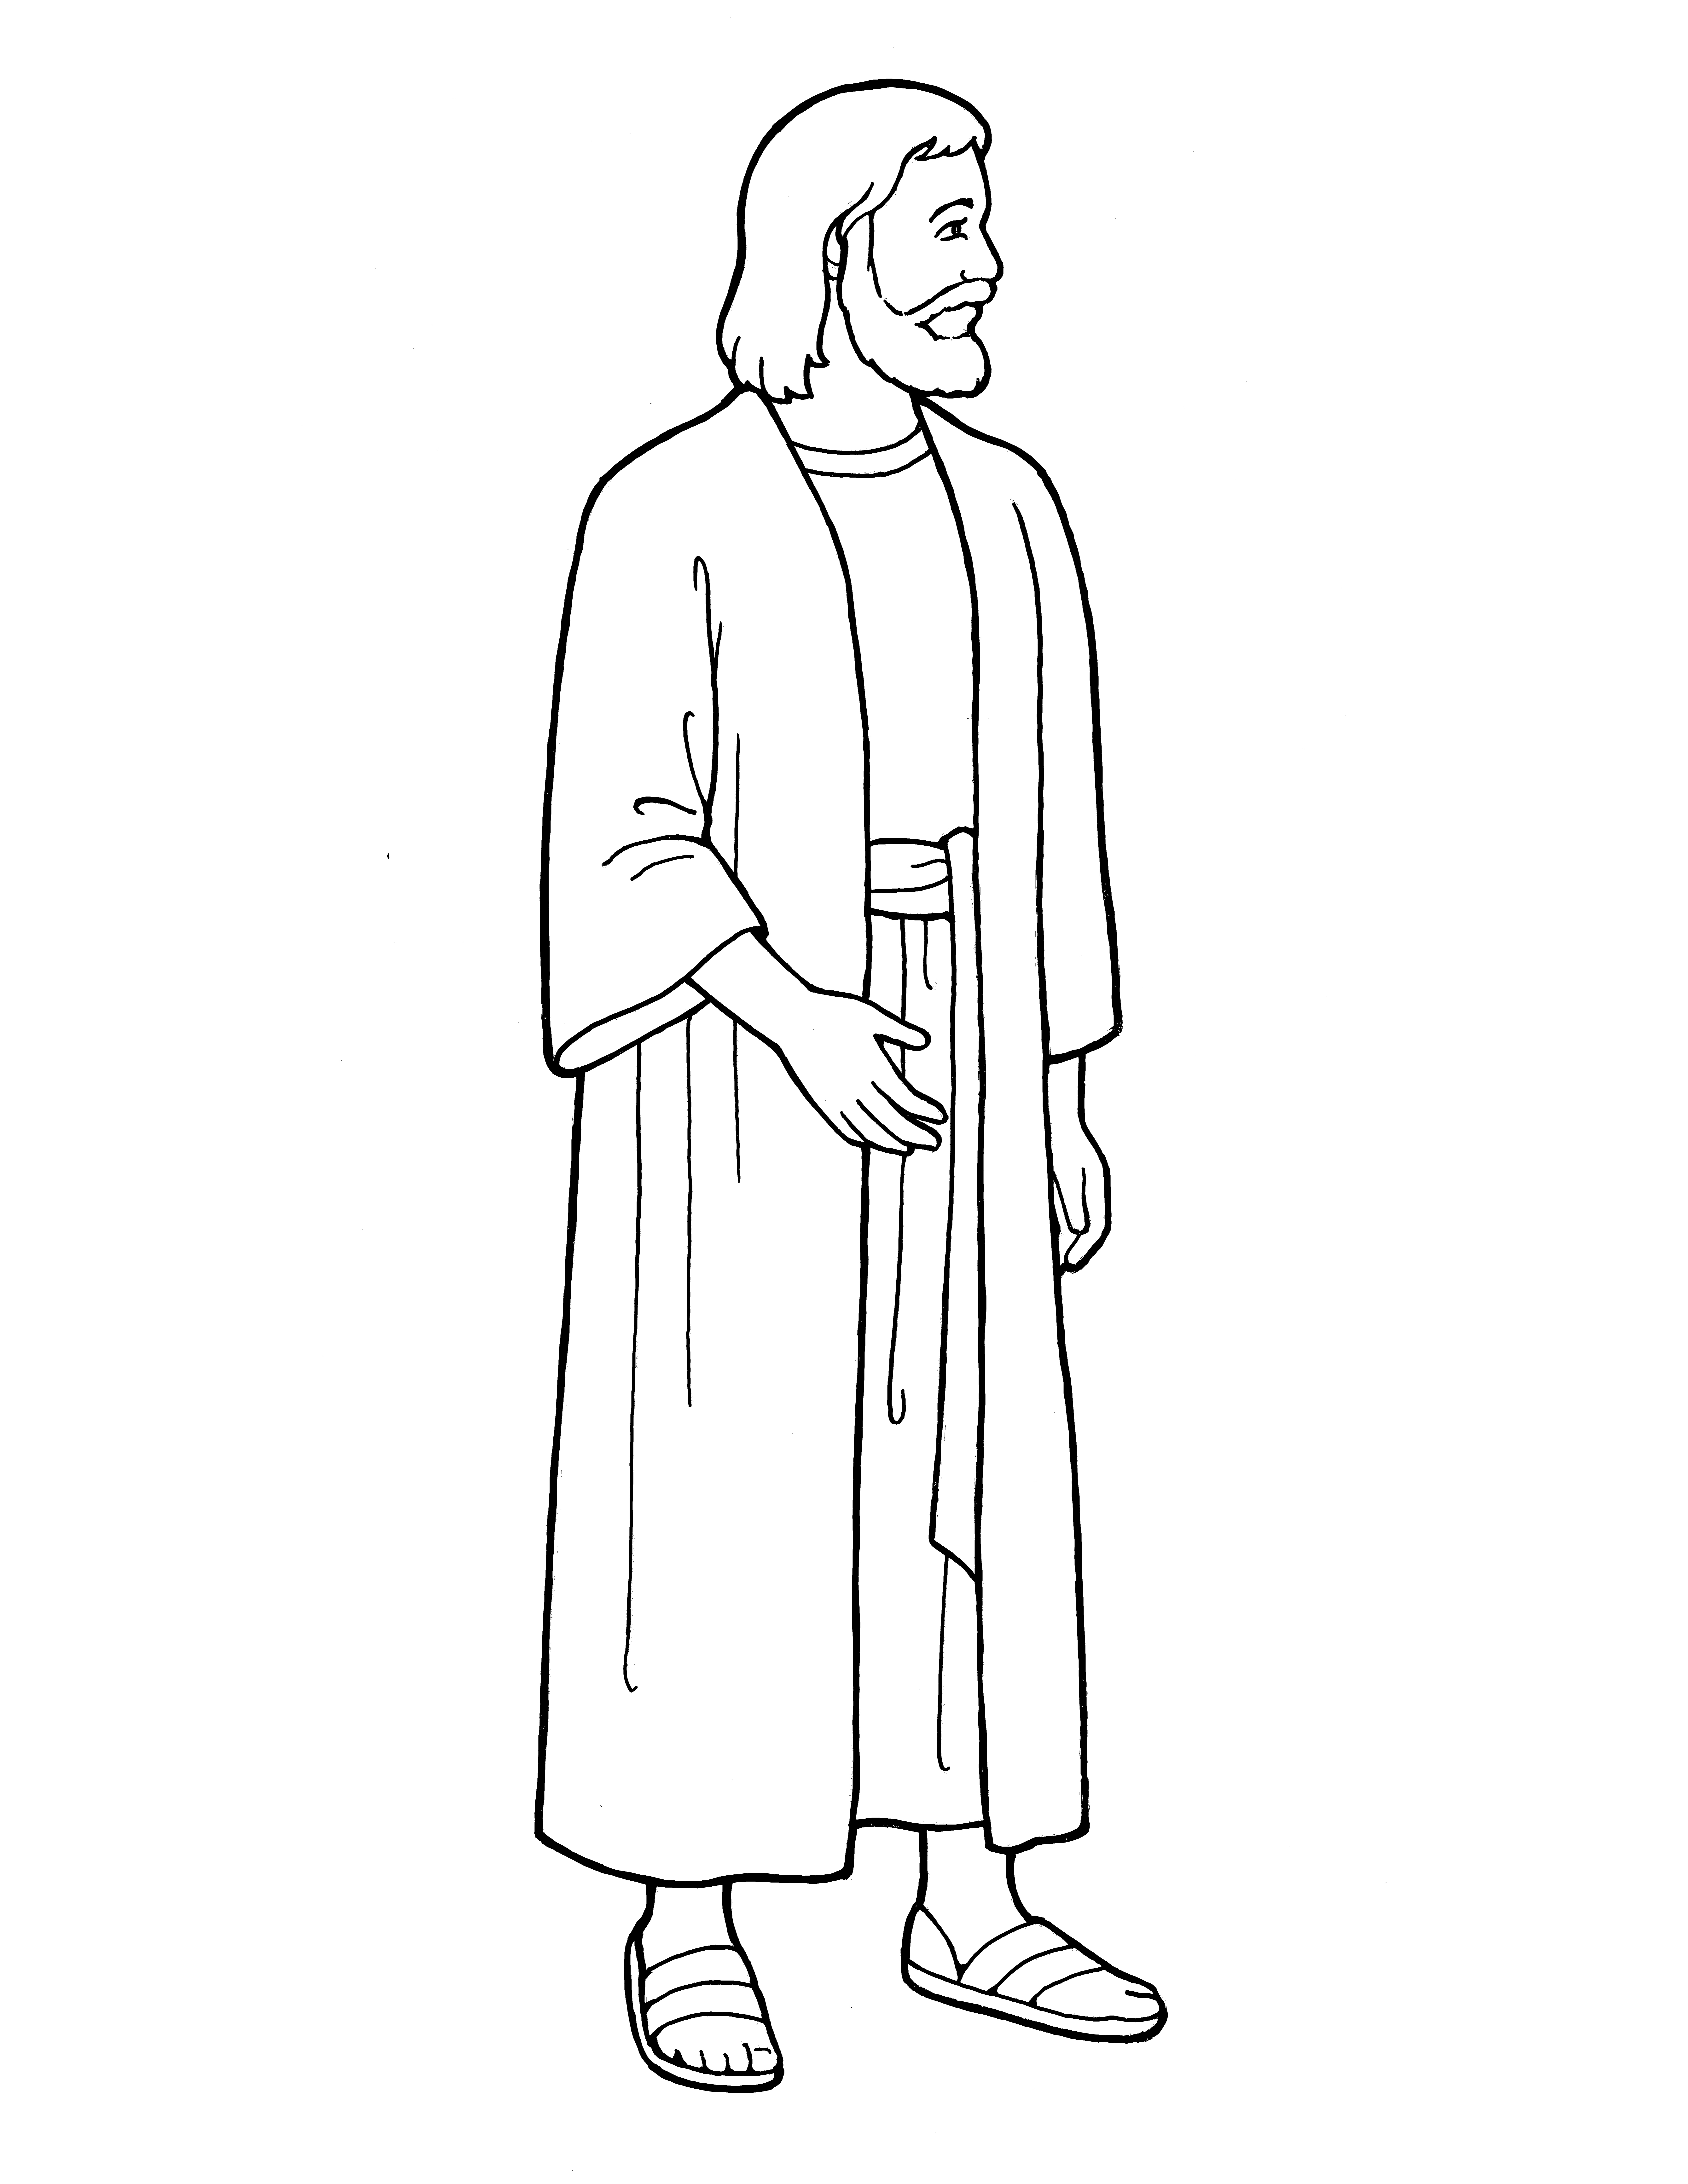 An illustration of Christ standing, from the nursery manual Behold Your Little Ones (2008), page 123.